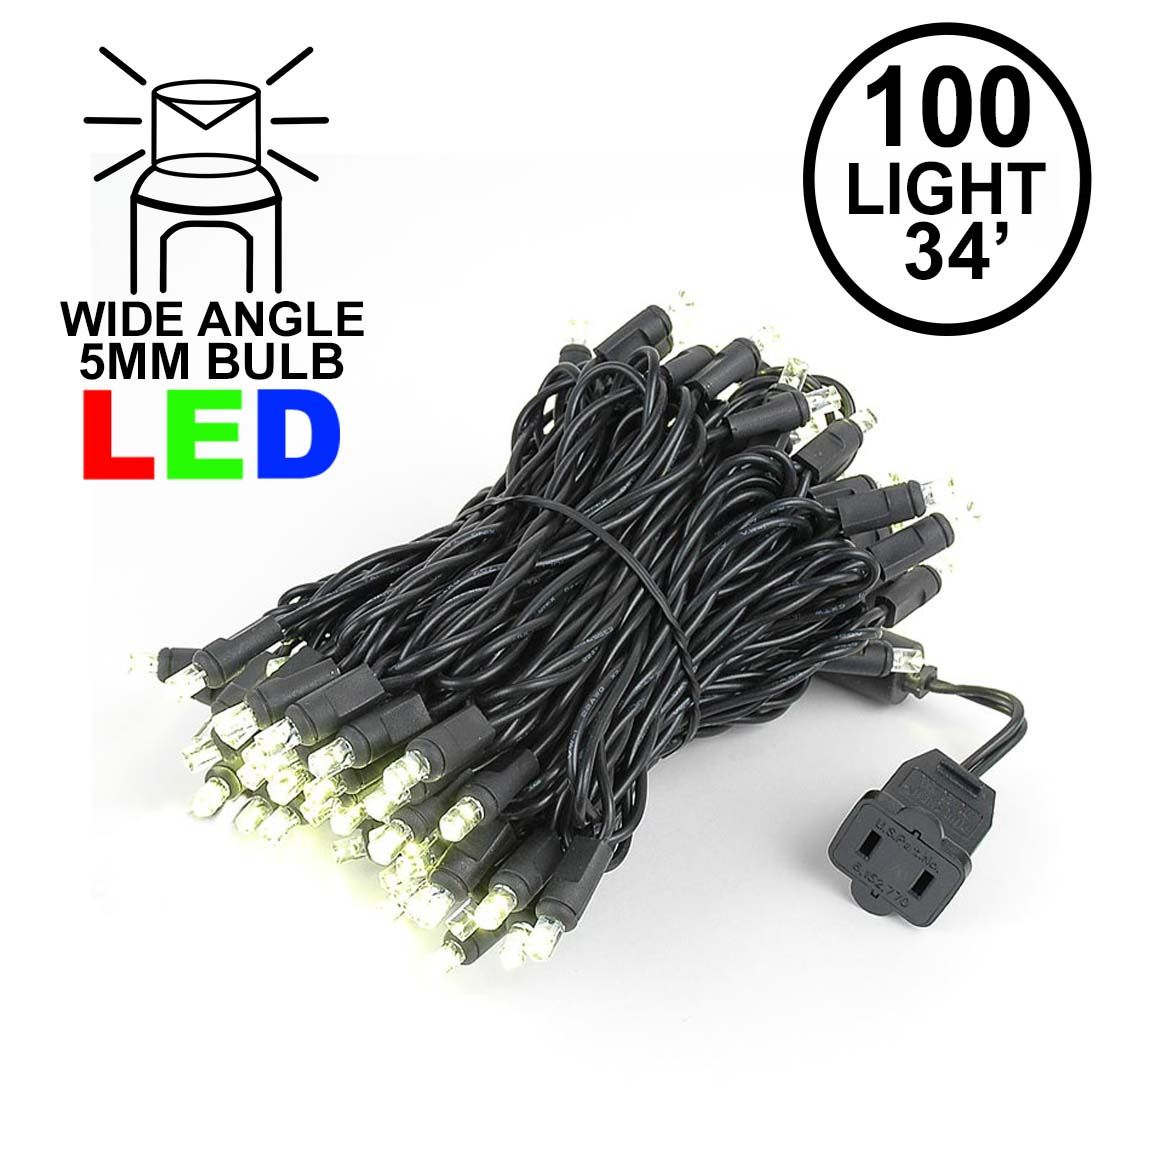 Wide Angle Warm White 100 Bulb LED Christmas Lights Sets on Black Wire